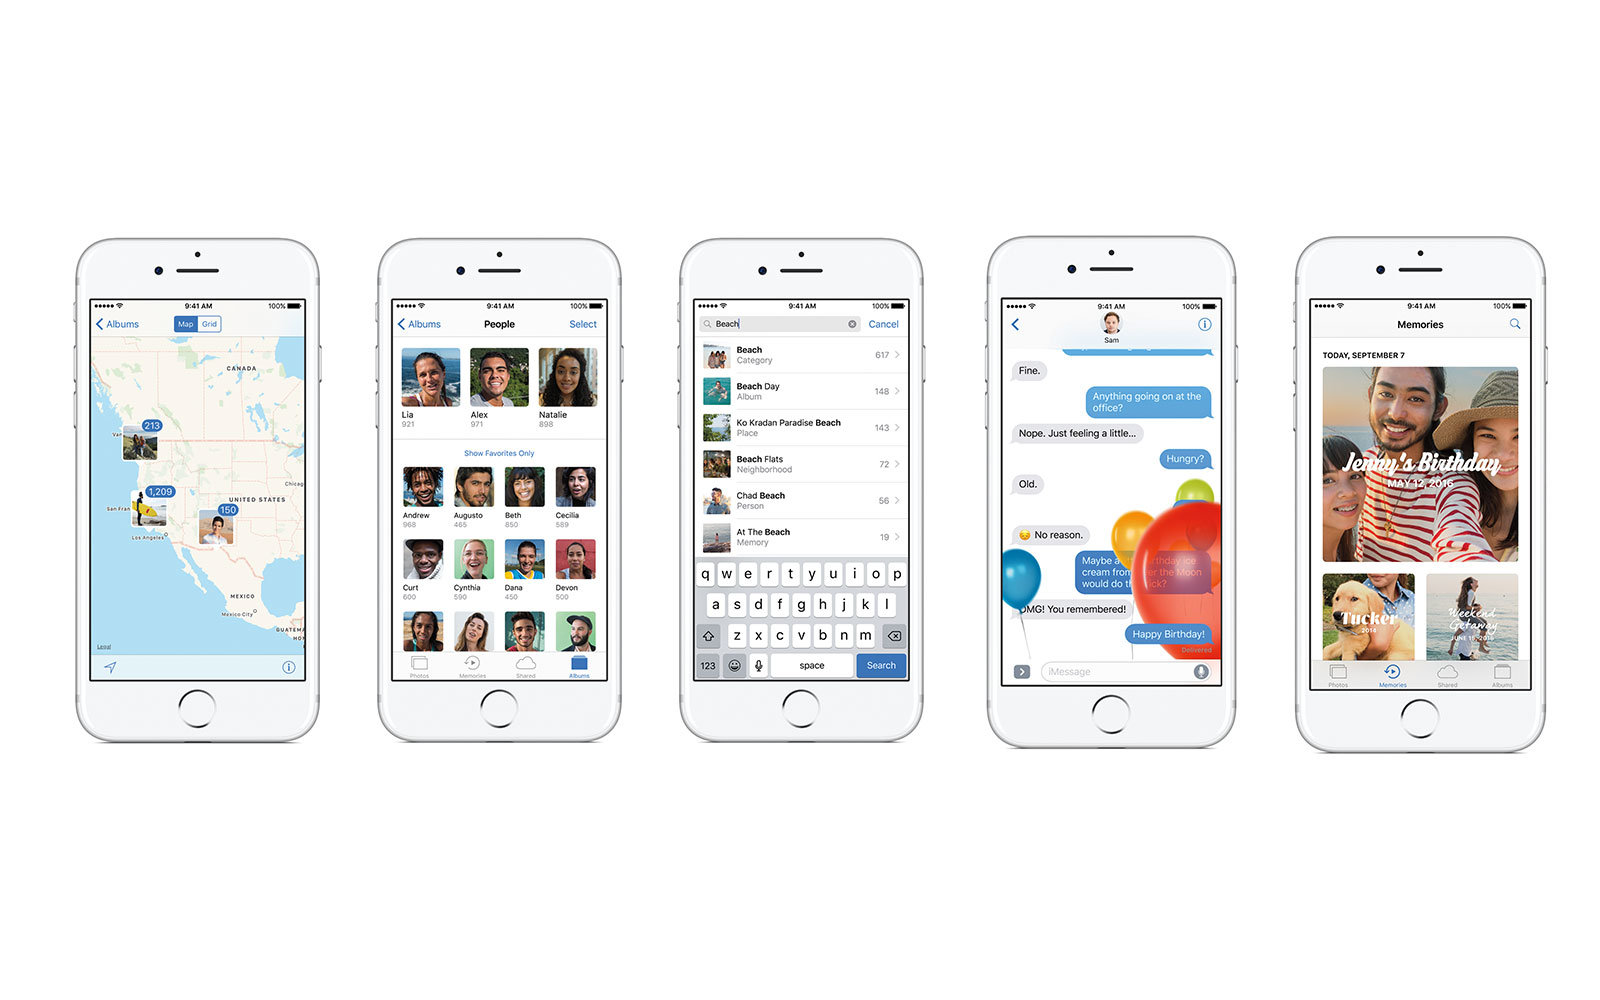 11 Essential iPhone Tips for iOS 10